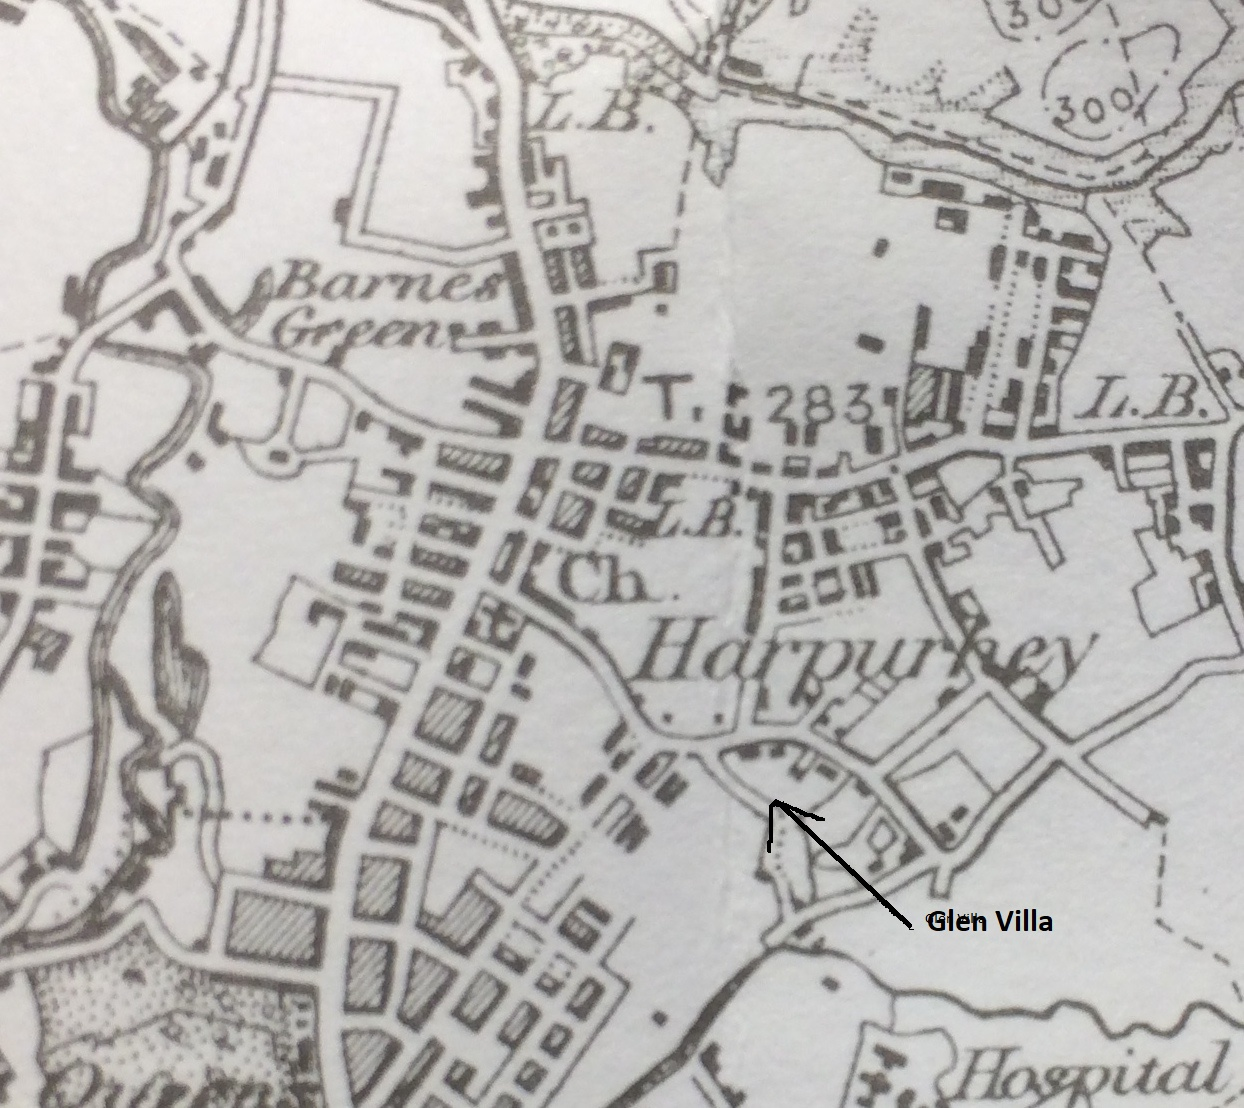 Harpurhey in 1896 from 1-inch OS map  - Alan Godrey sheet 85 and National Library of Scotland